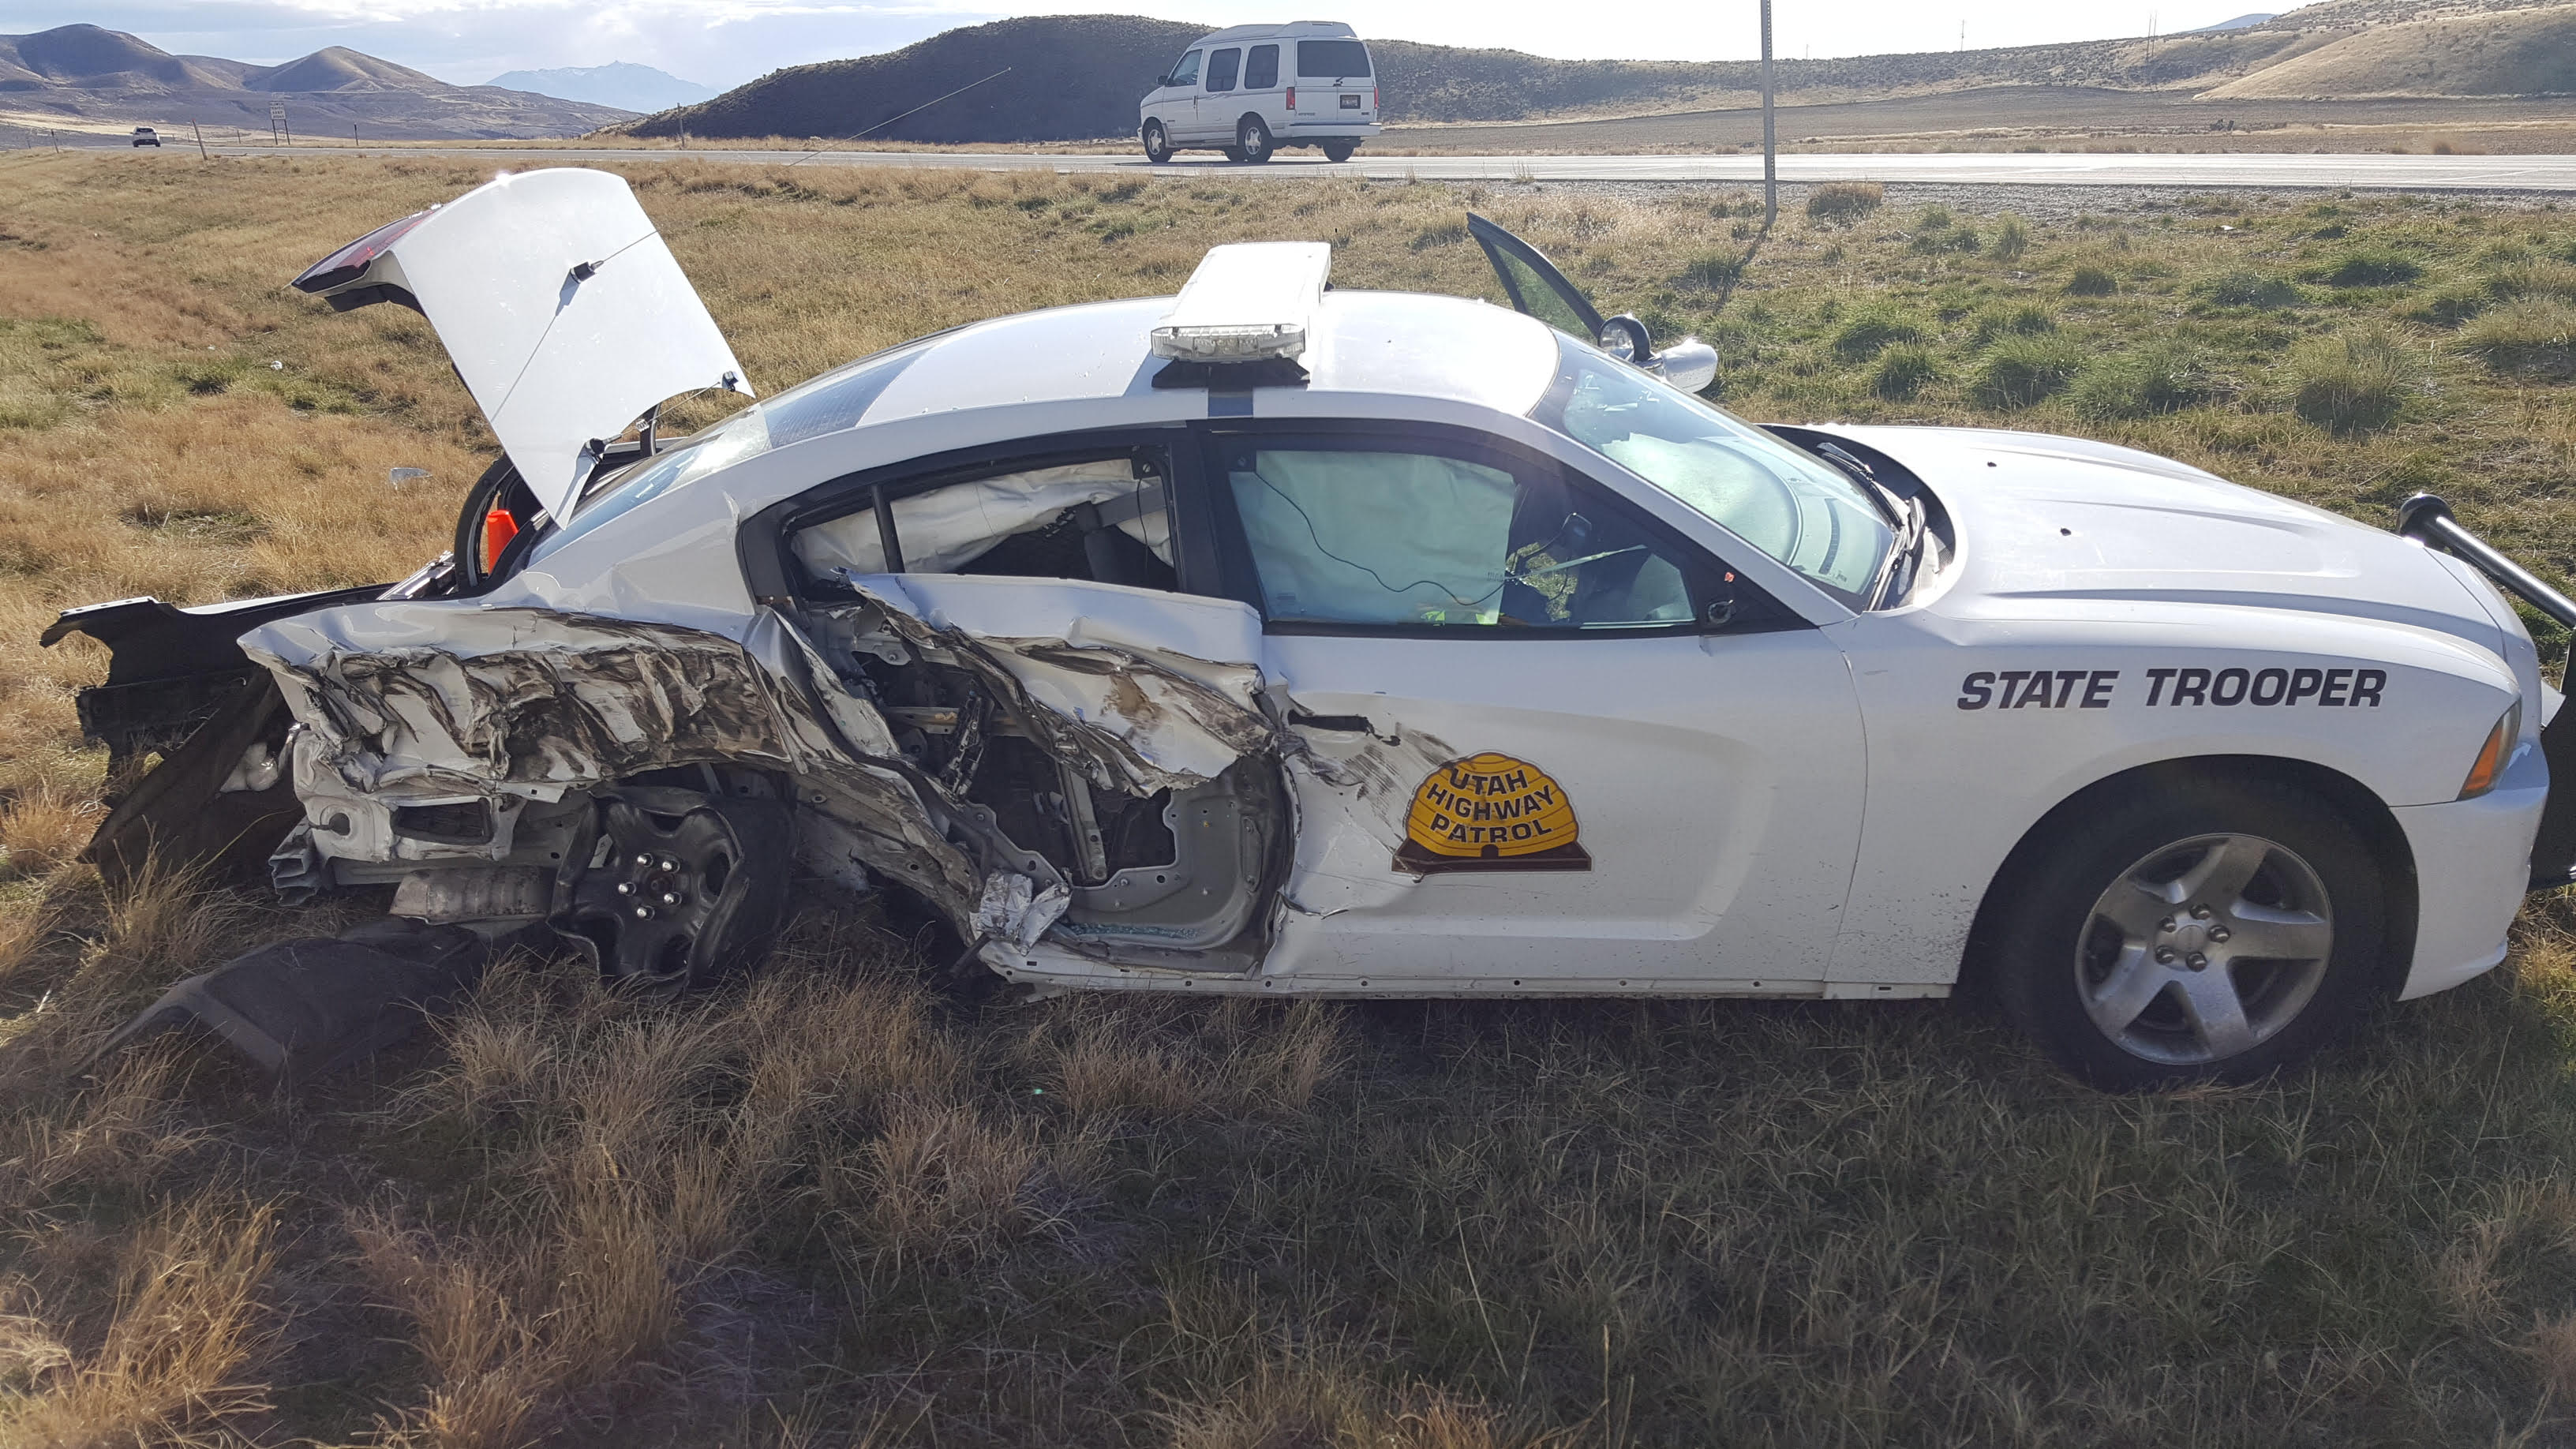 While providing traffic control for a vehicle fire, a UHP trooper's patrol car is struck by a semi on Interstate 84 near milepost 34, Box Elder County, Utah, Nov. 21, 2016   Photo courtesy of the Utah Highway Patrol, St. George News